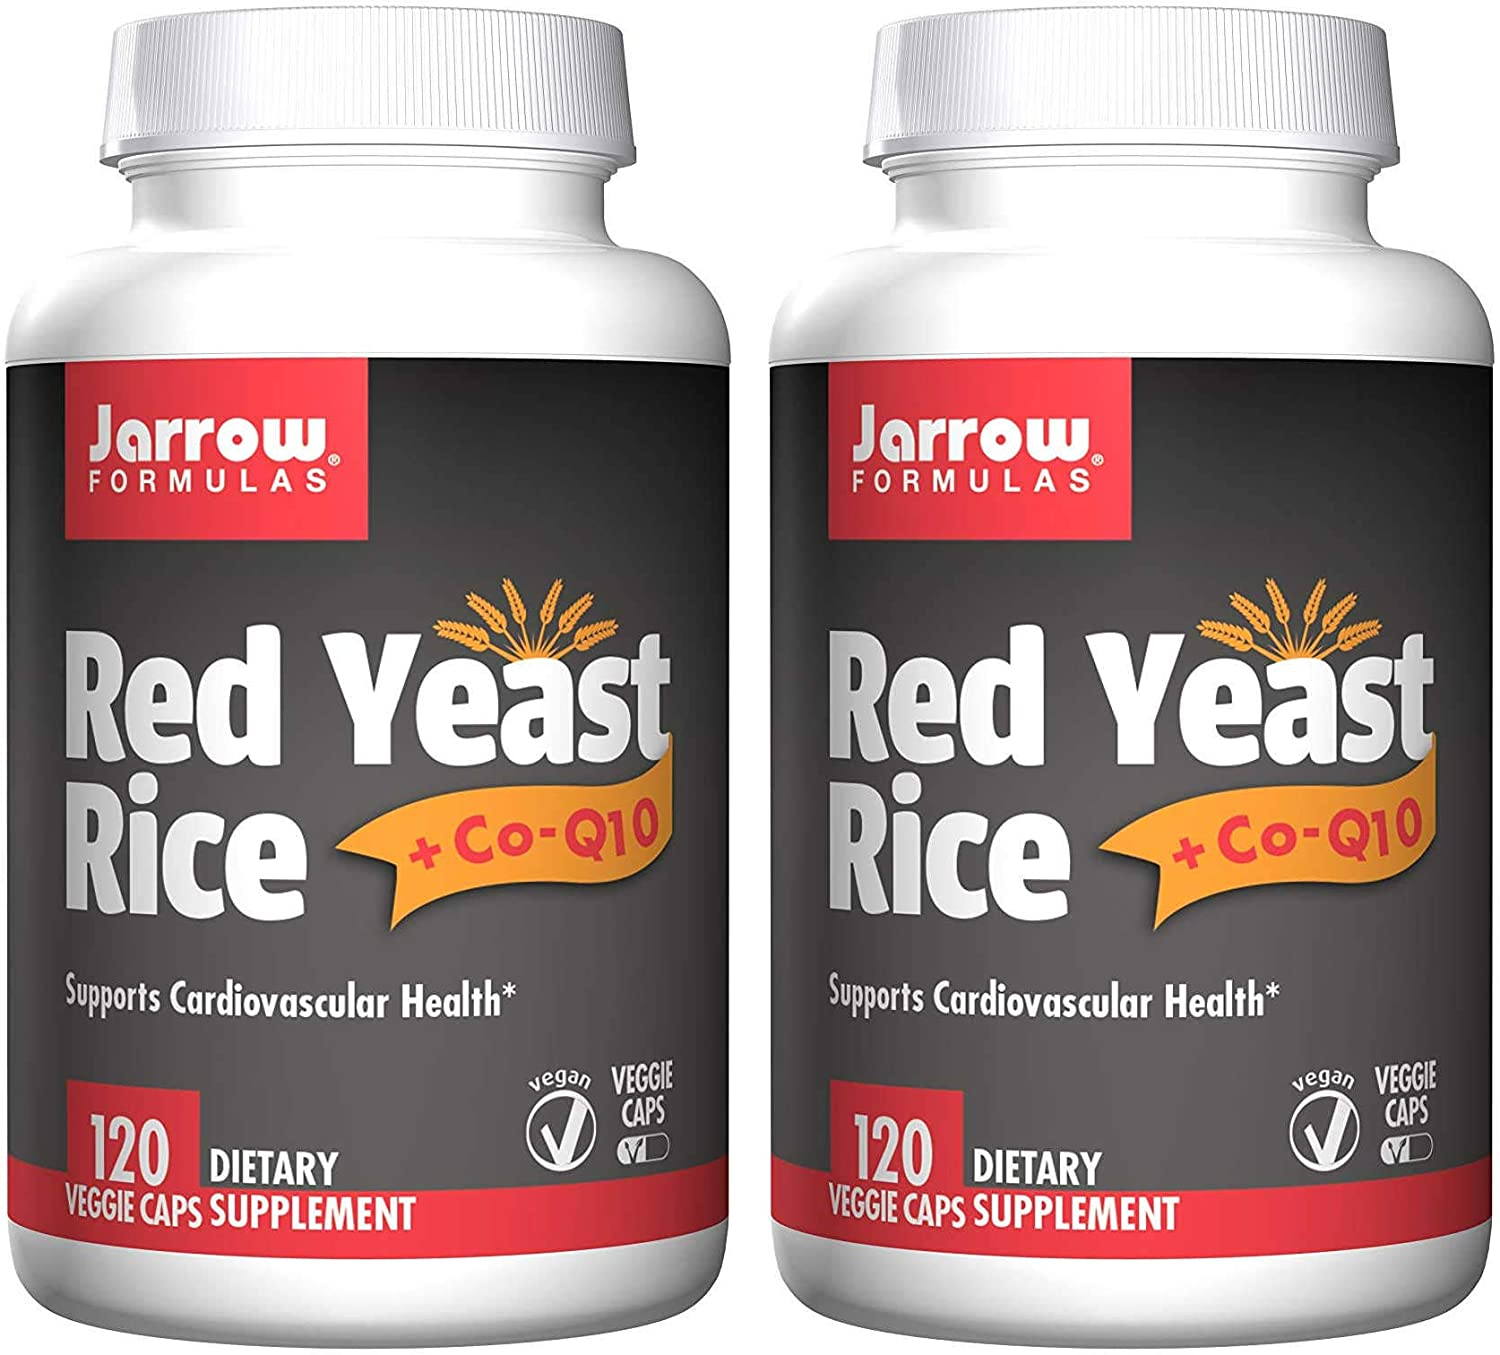 Jarrow Formulas Red Yeast Rice + CoQ10 Supports Cardiovascular Health Dietary Supplement - 120 Veggie Caps (Pack of 2)